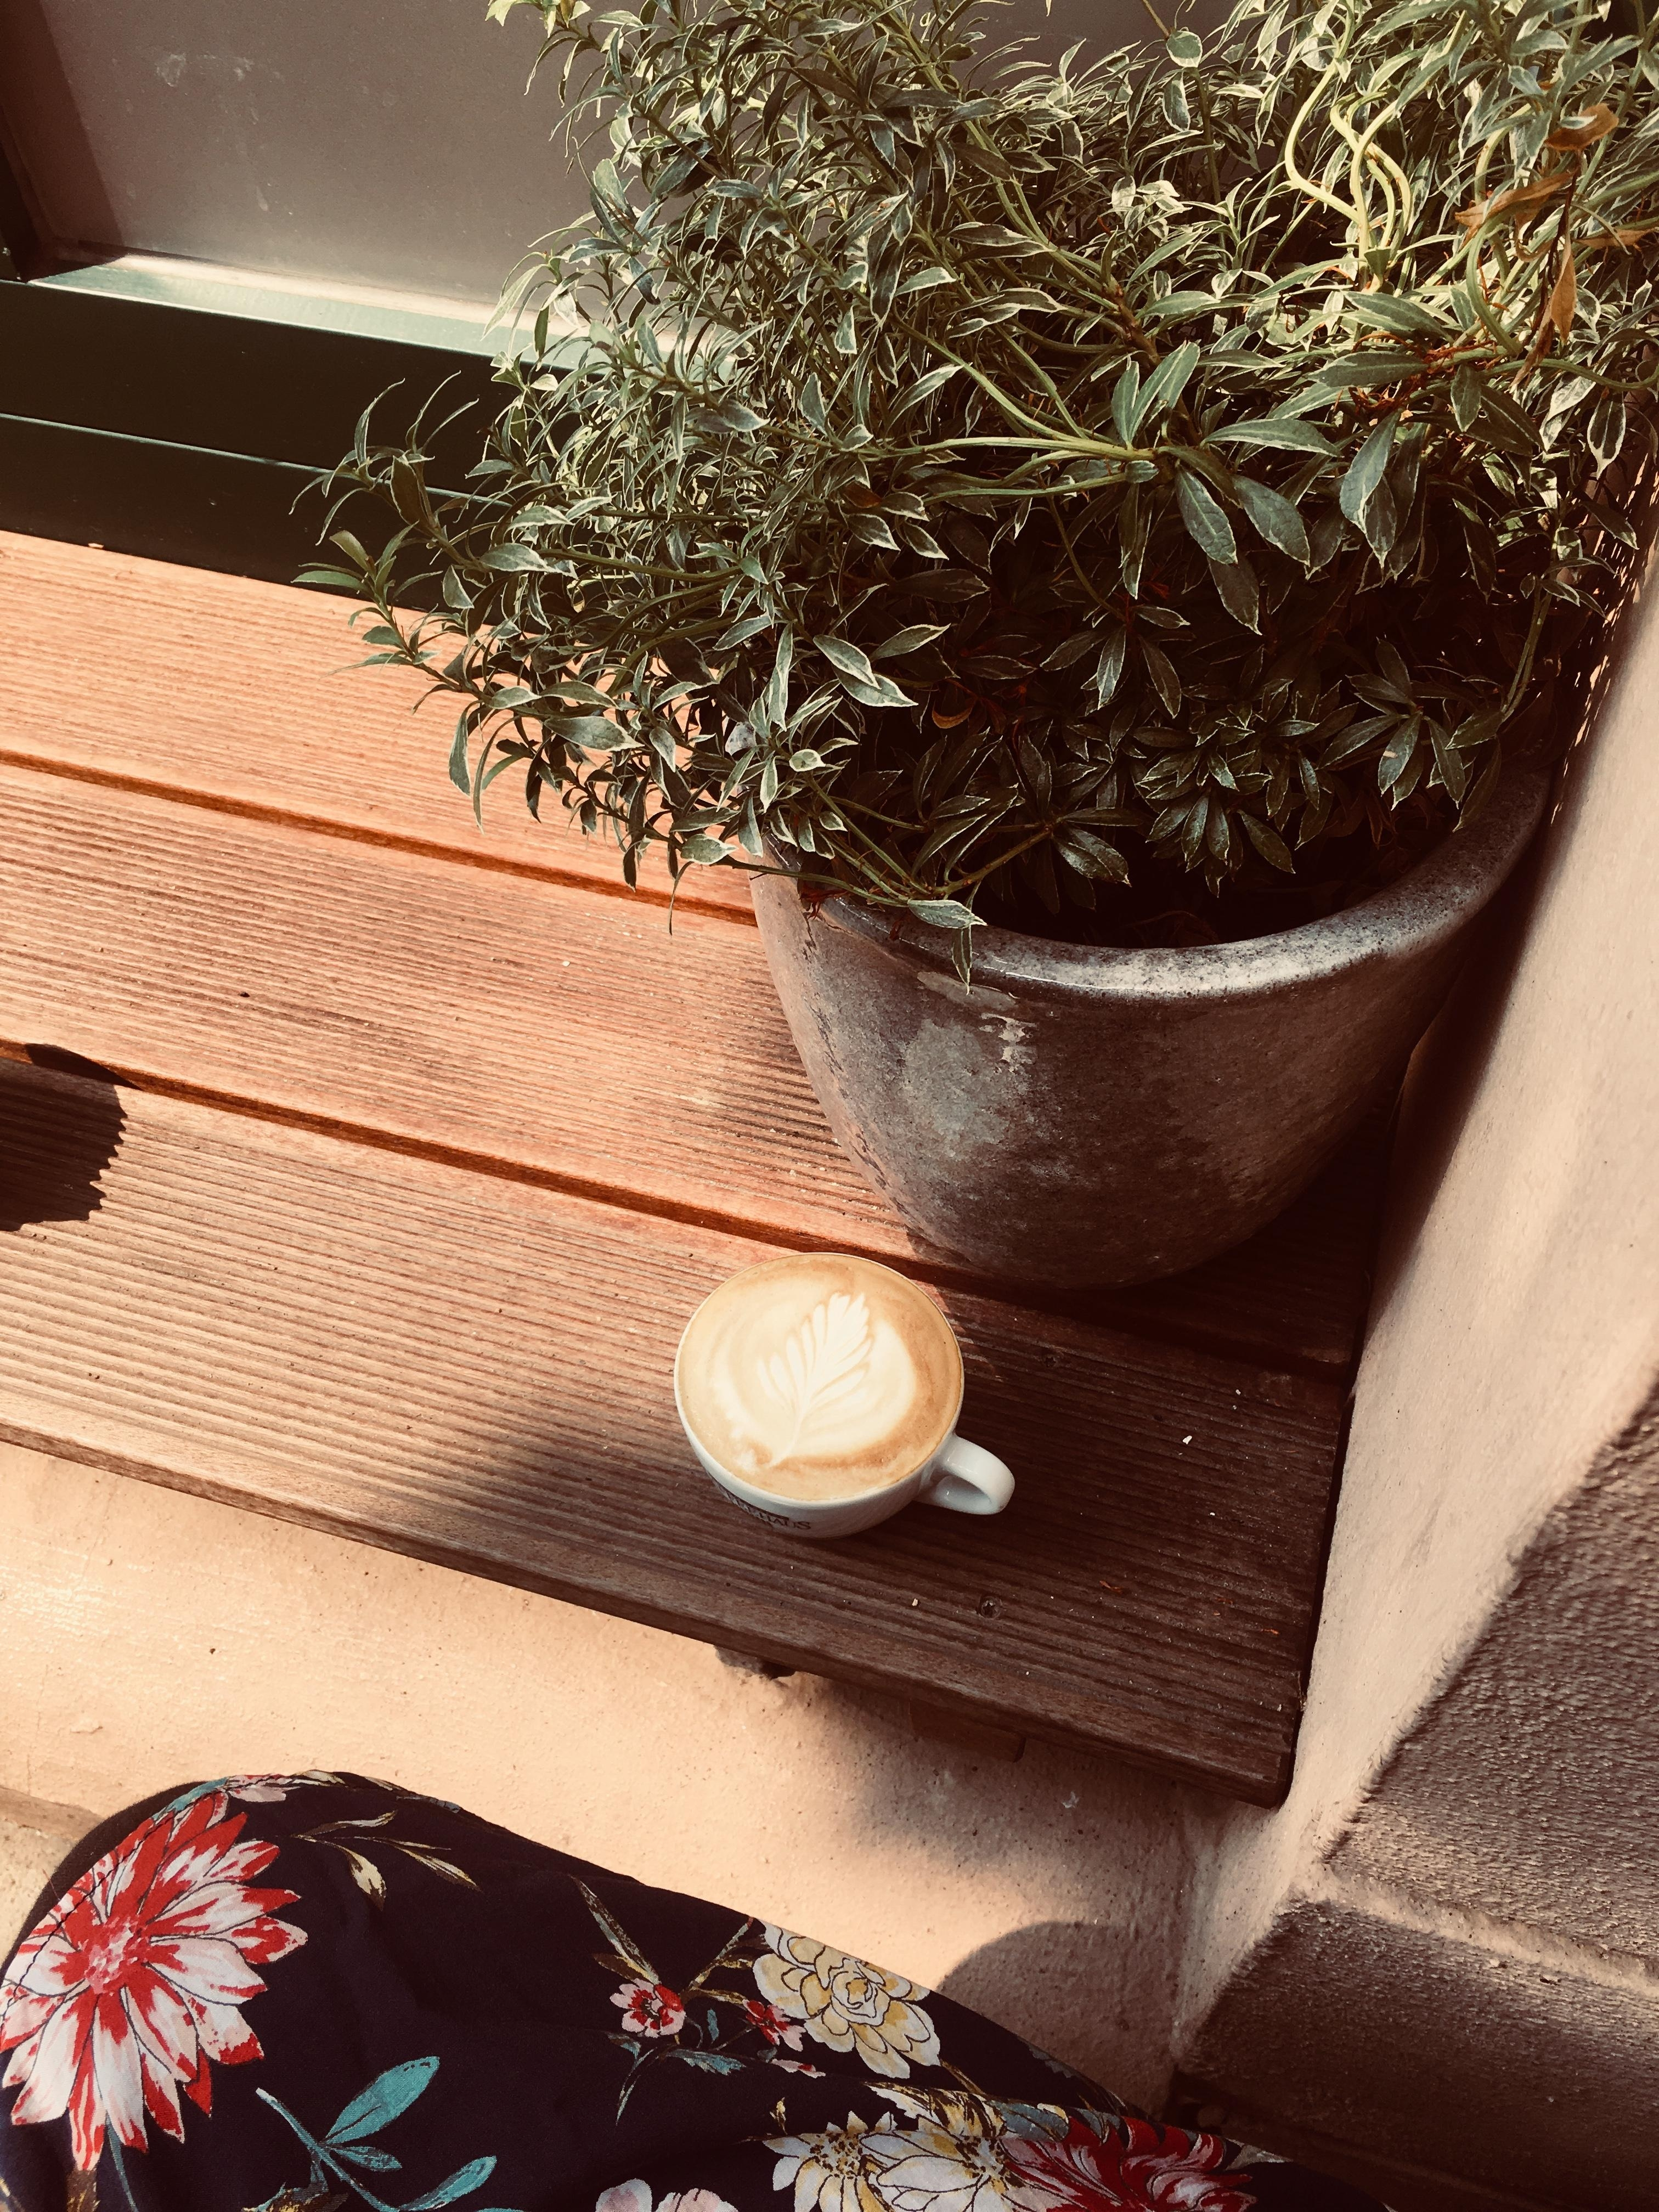 Kein Tag ohne guten Kaffee! :)